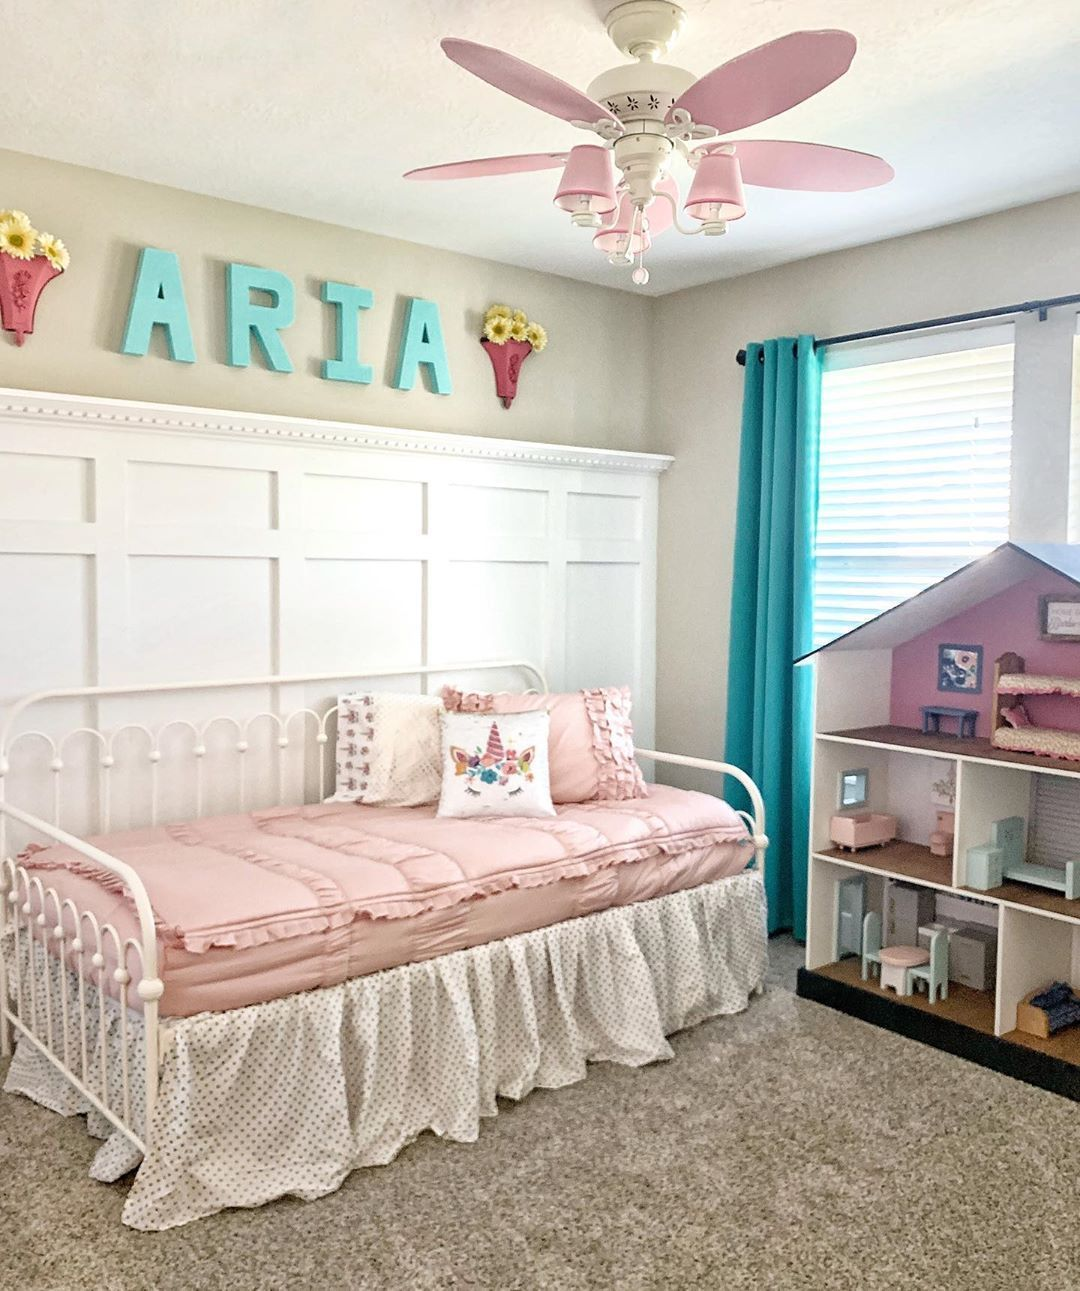 Girl bedroom decor. Beddys. Beddys bedding. Wainscoting. Girls room. Bedroom decor. Little girl room. Doll cabinet. Doll house. #beddysbedding Girl bedroom decor. Beddys. Beddys bedding. Wainscoting. Girls room. Bedroom decor. Little girl room. Doll cabinet. Doll house. #beddysbedding